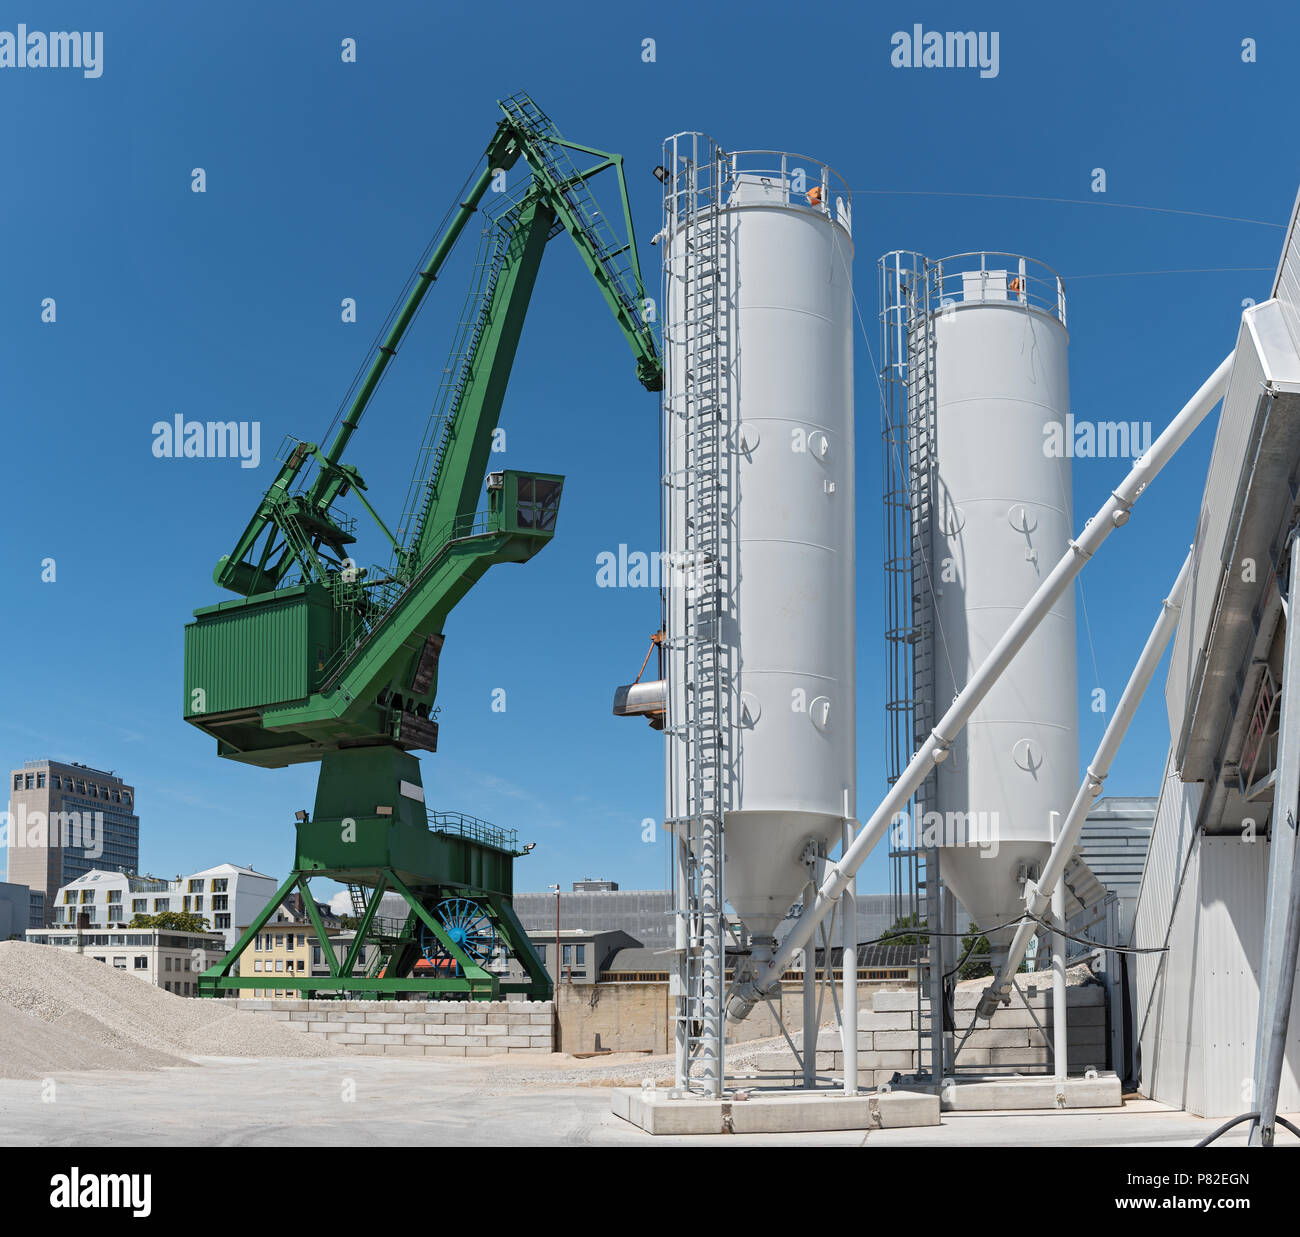 Exterior view of a cement factory with green crane. - Stock Image